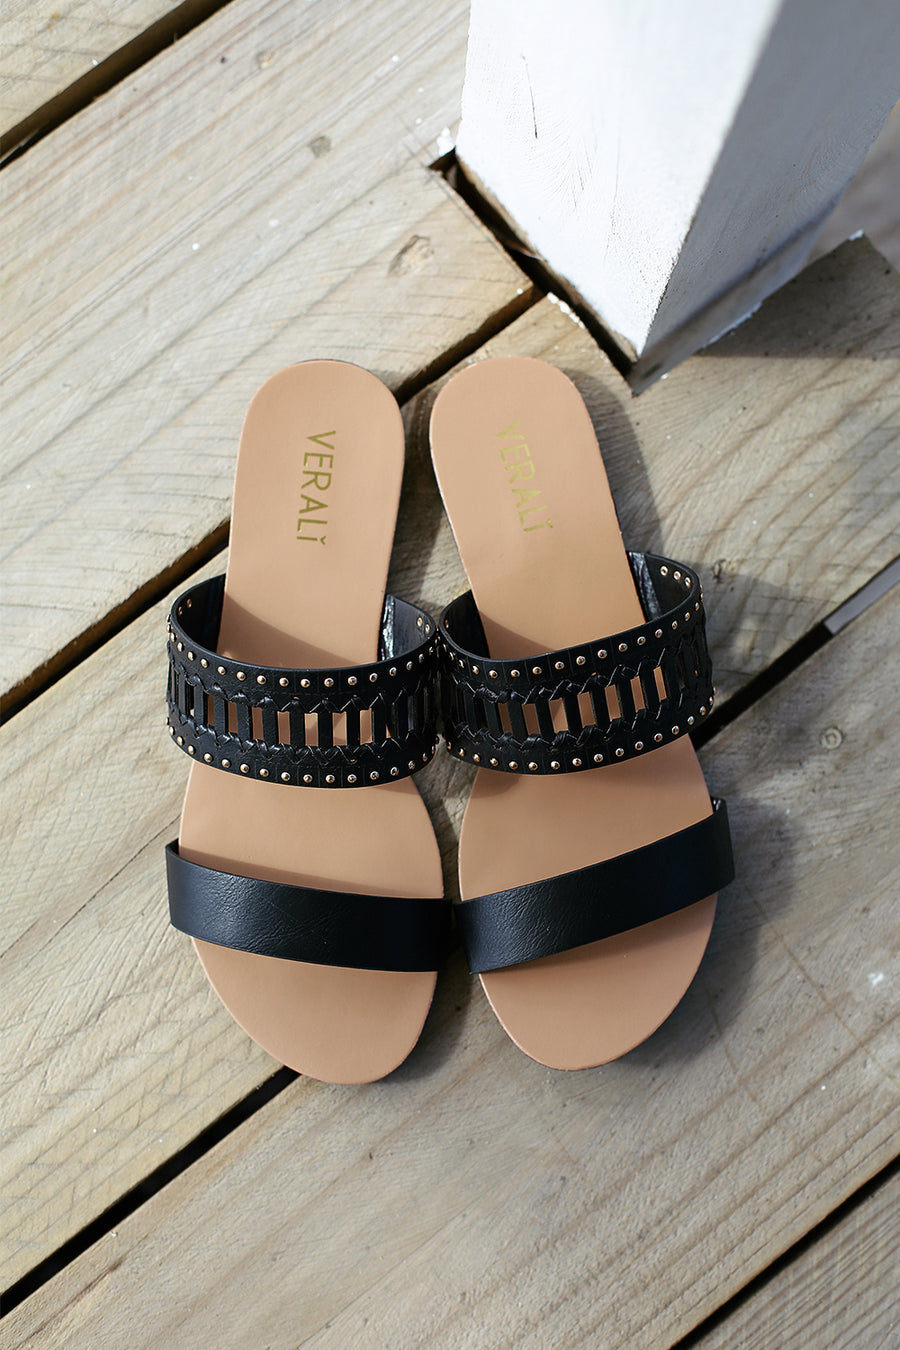 Bali Sandals - Black - By Verali - HER Empire Fashion Boutique Terrigal & Online